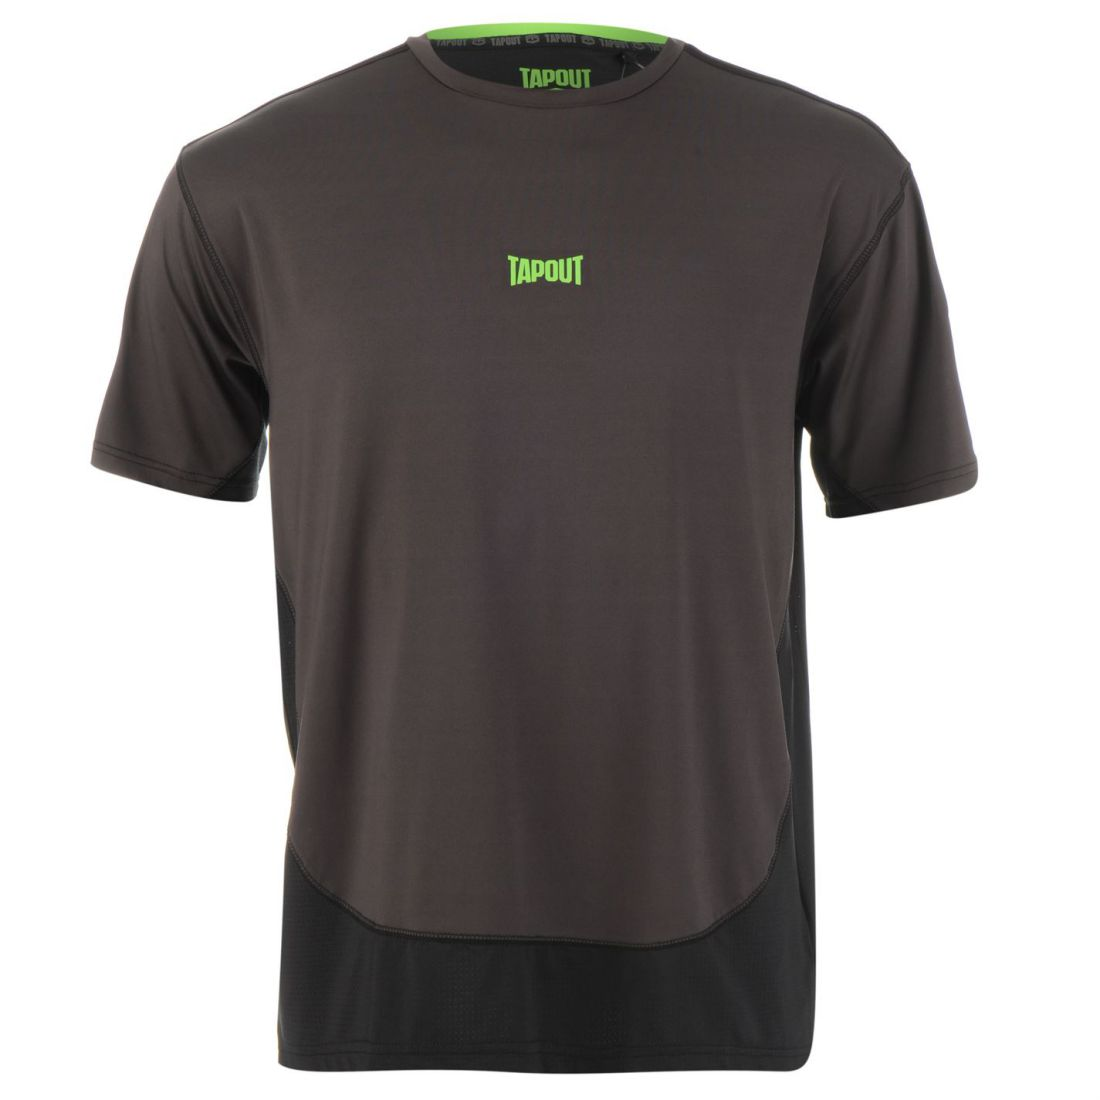 2f90e2c4 Tapout Mens Two Tone T Shirt Short Sleeve Performance Tee Top Crew ...